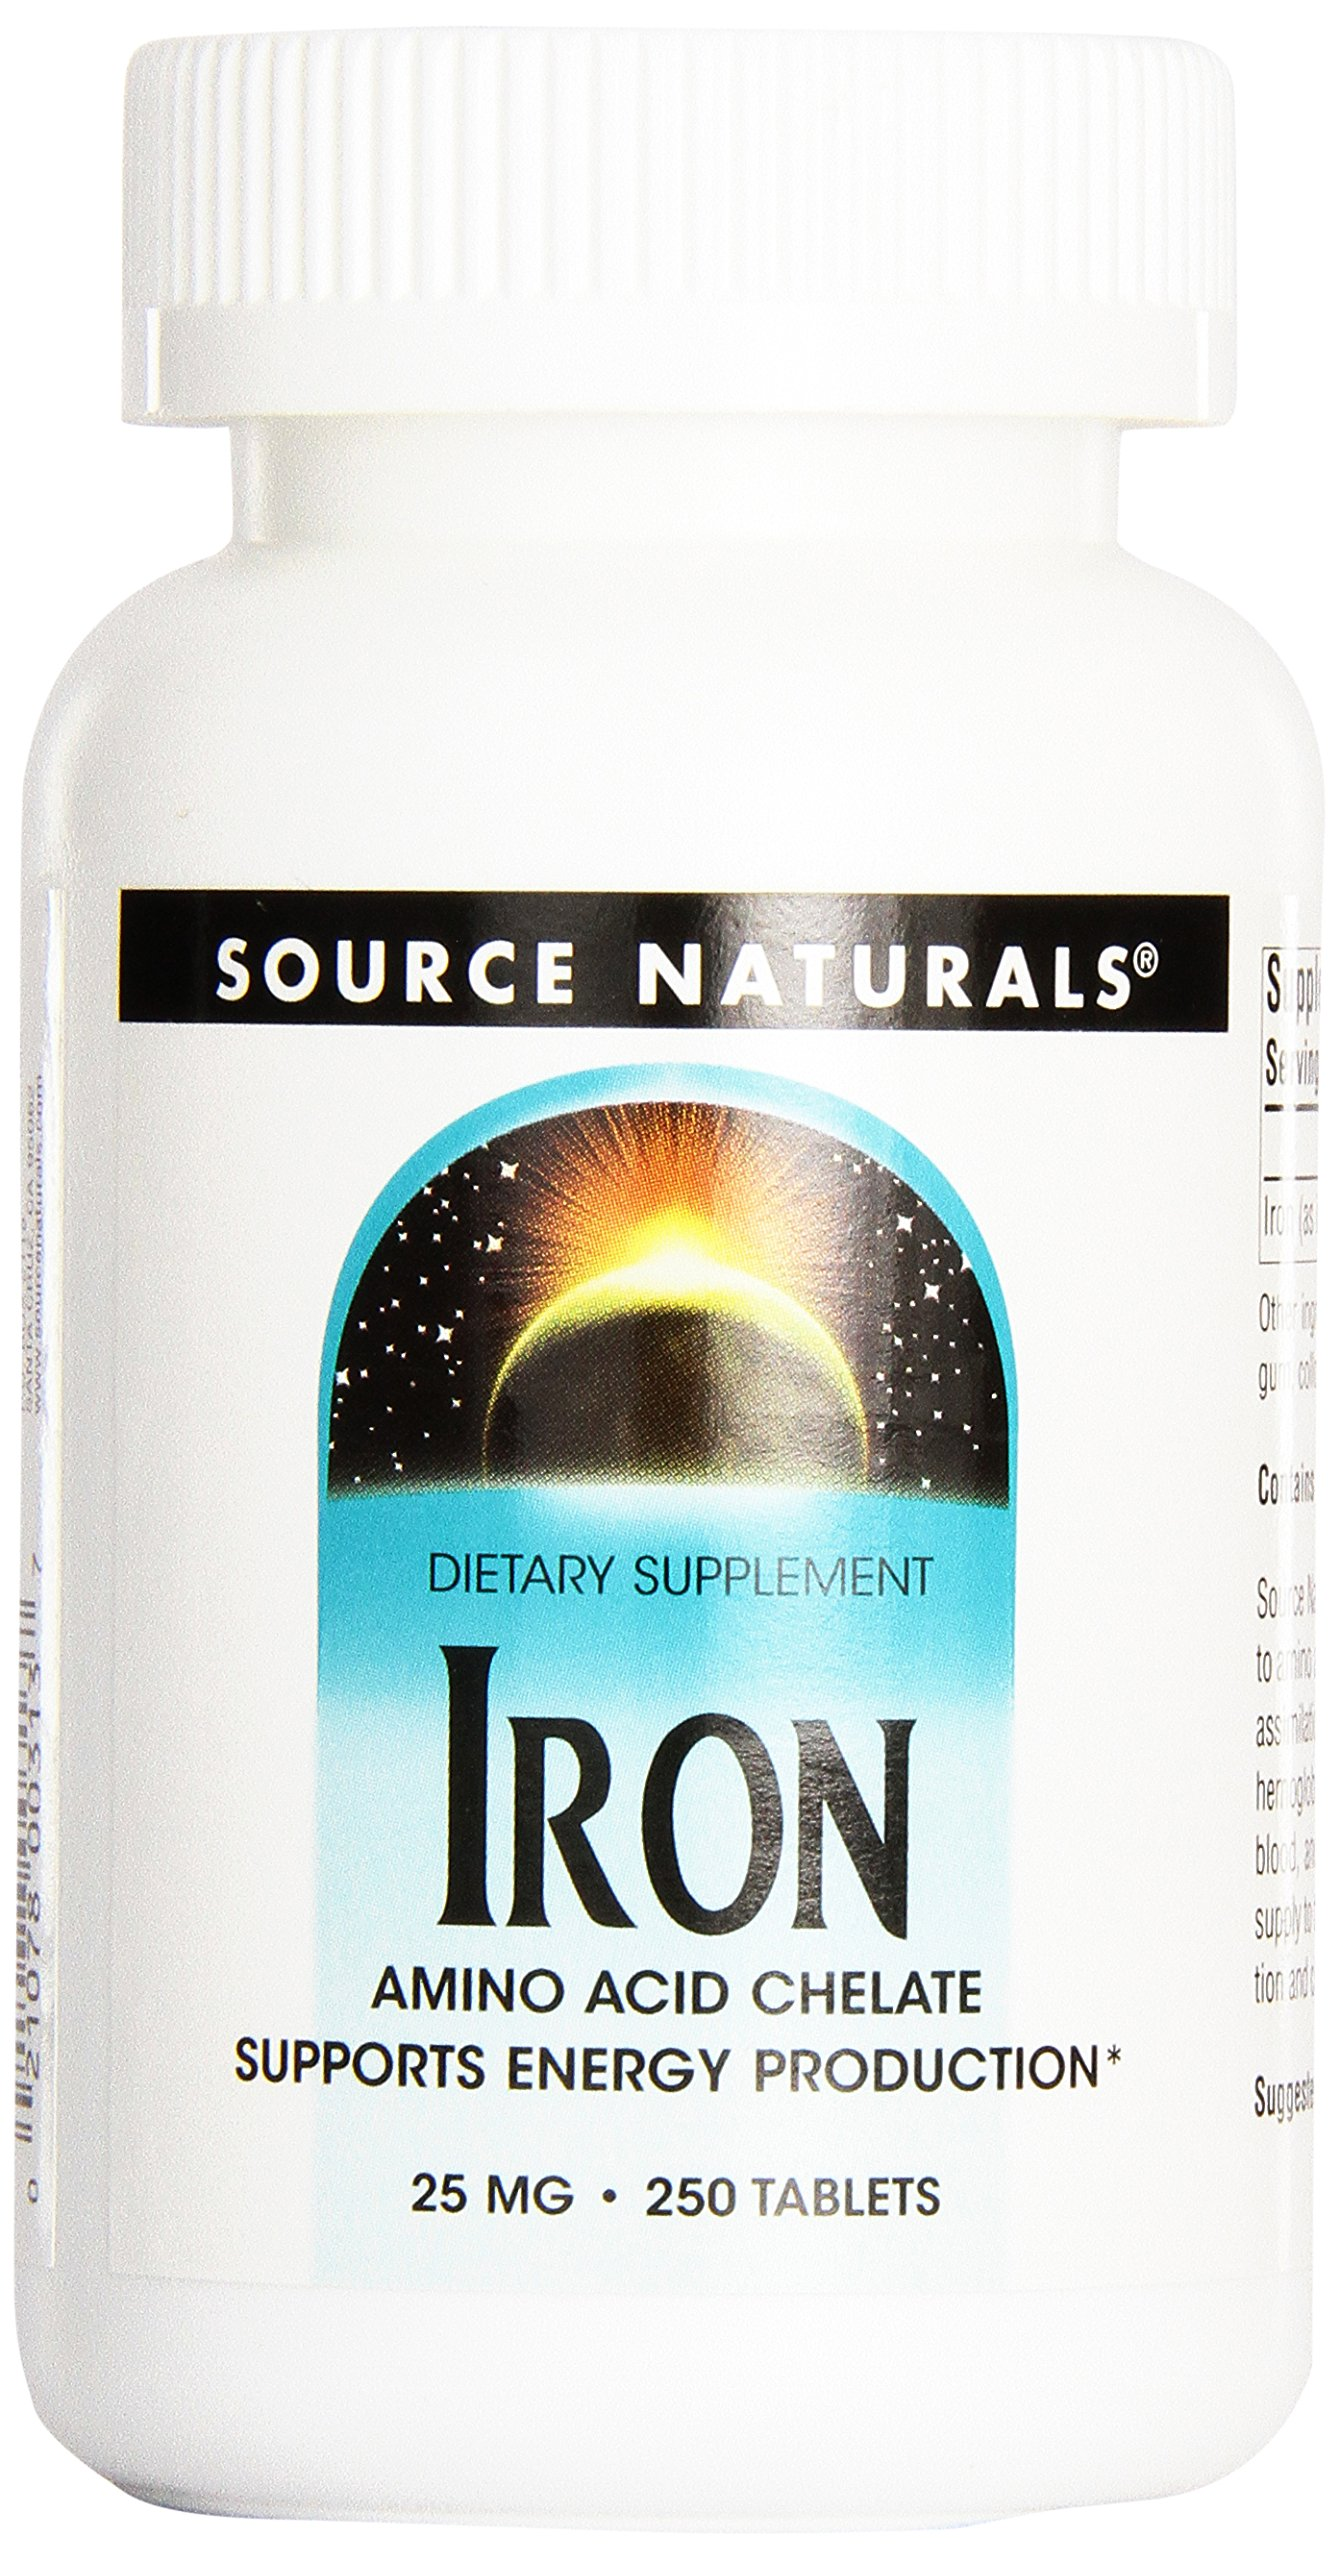 Source Naturals Iron Chelate, 25mg, 250 Tablets (Pack of 12)